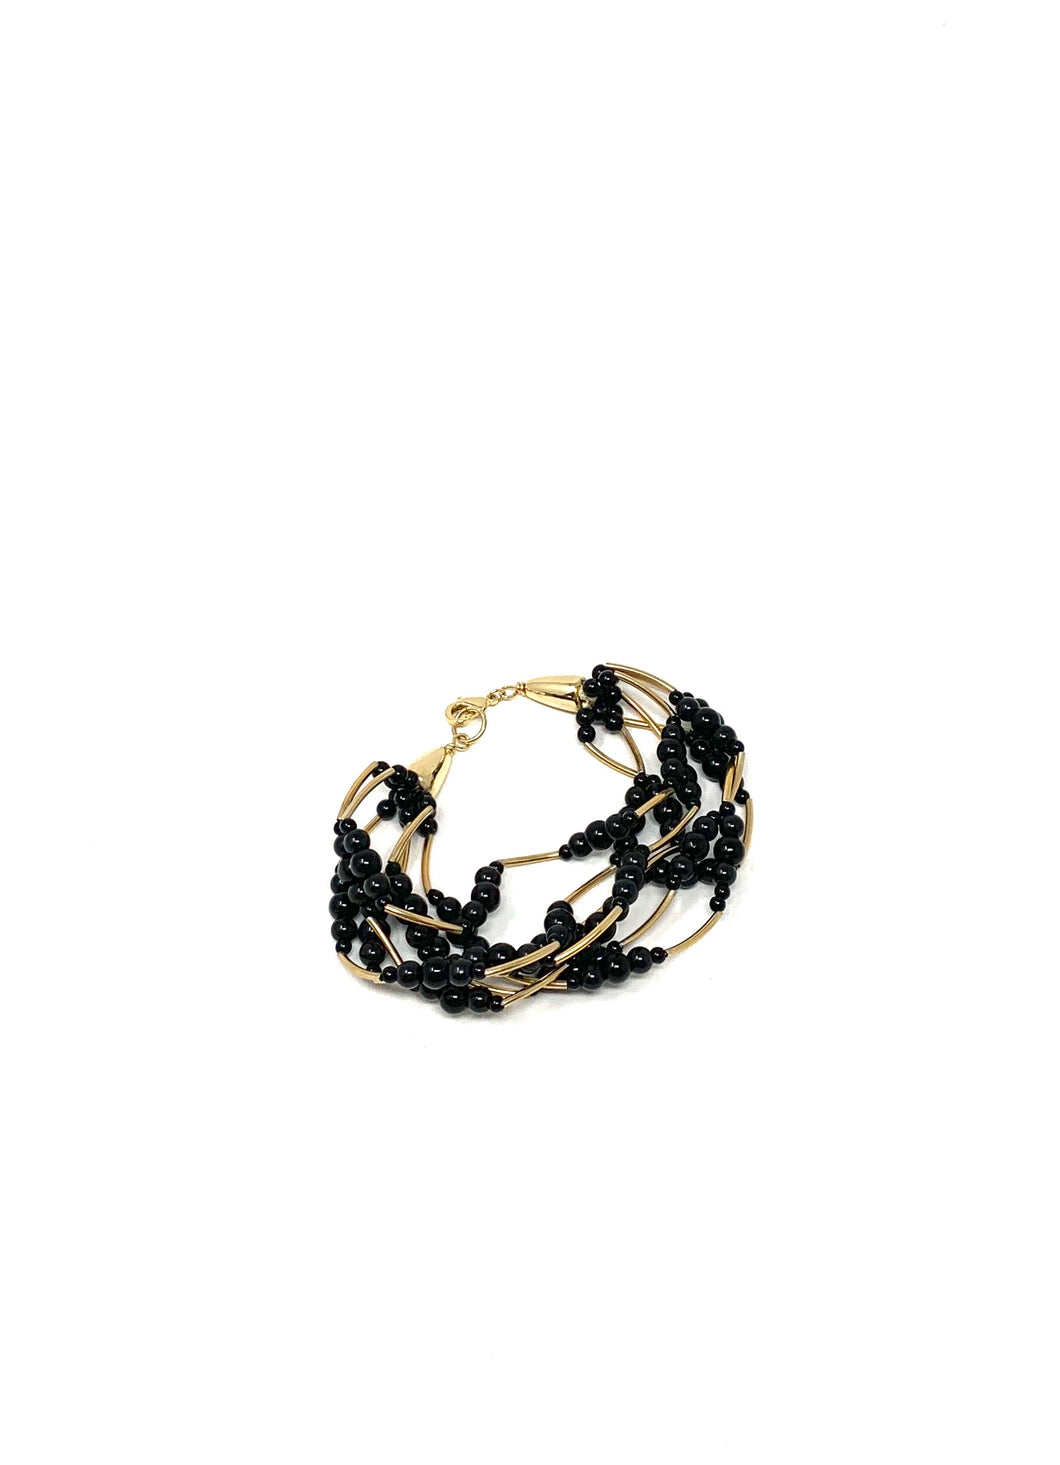 Black Beaded Layered Bracelet